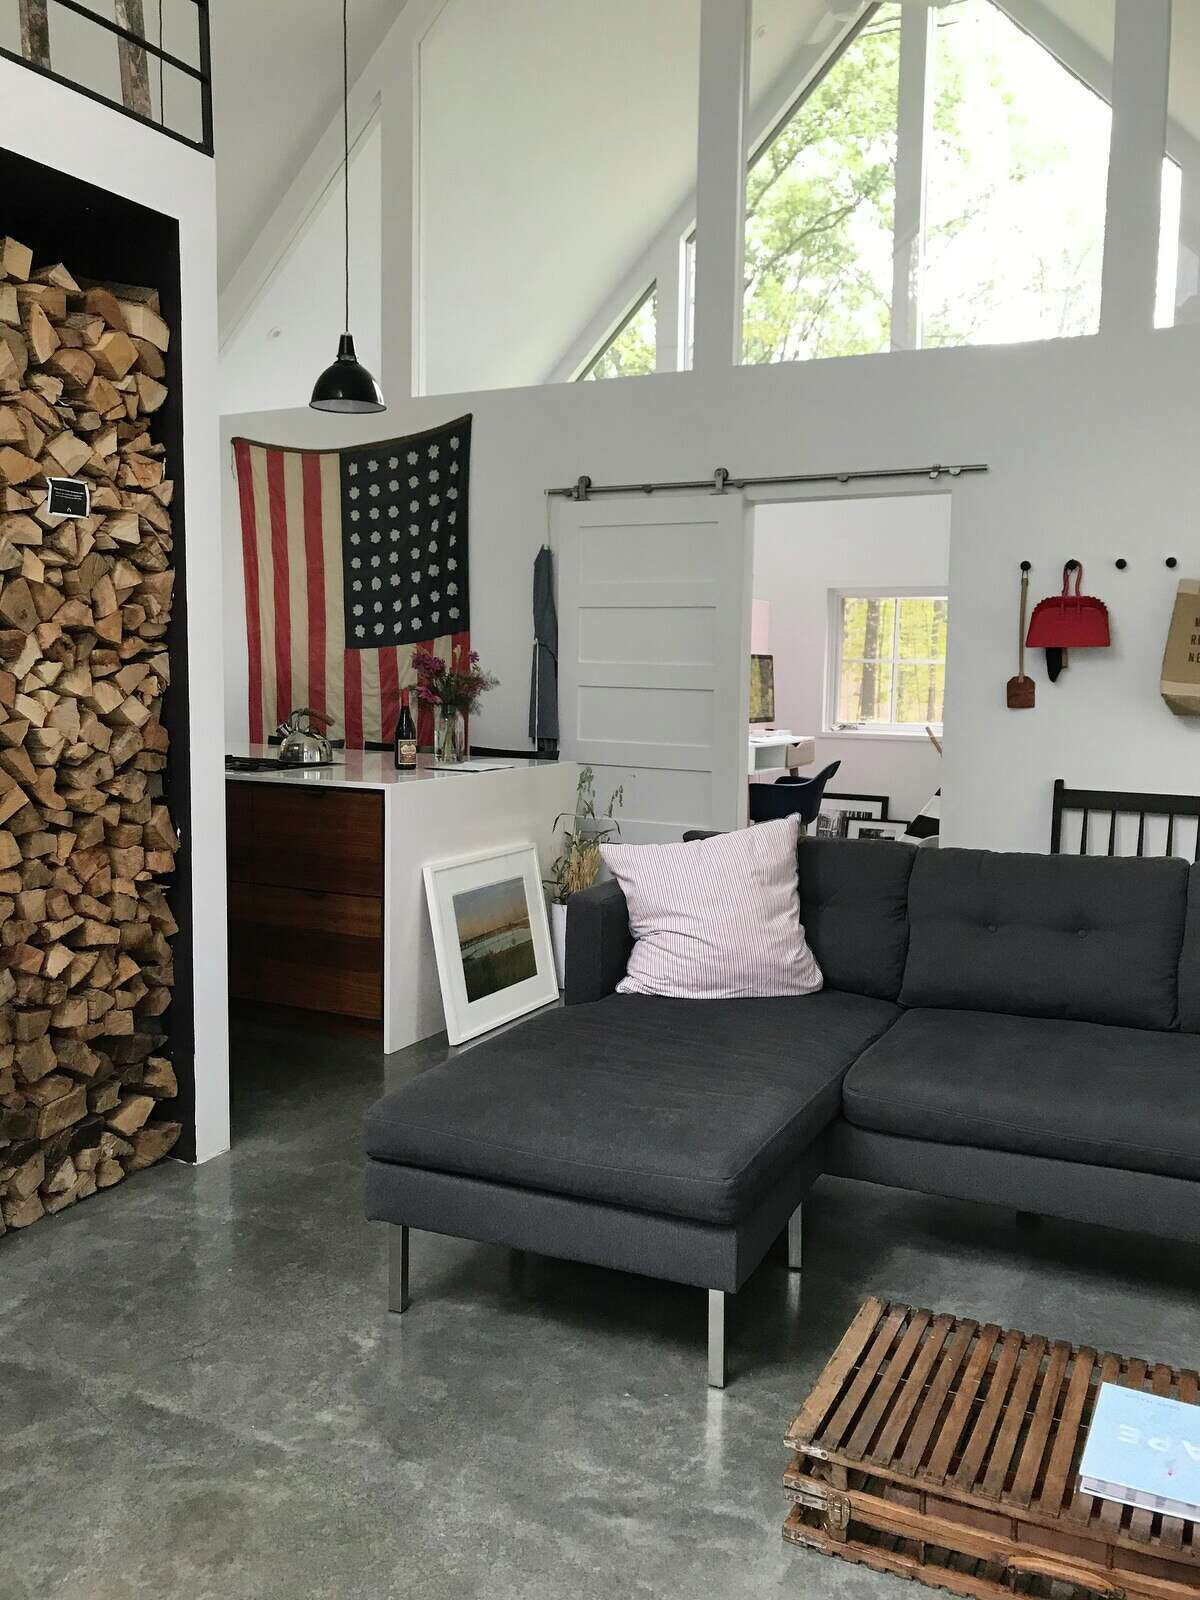 Red Hook, New York | Room for 6 guests | $358 per night